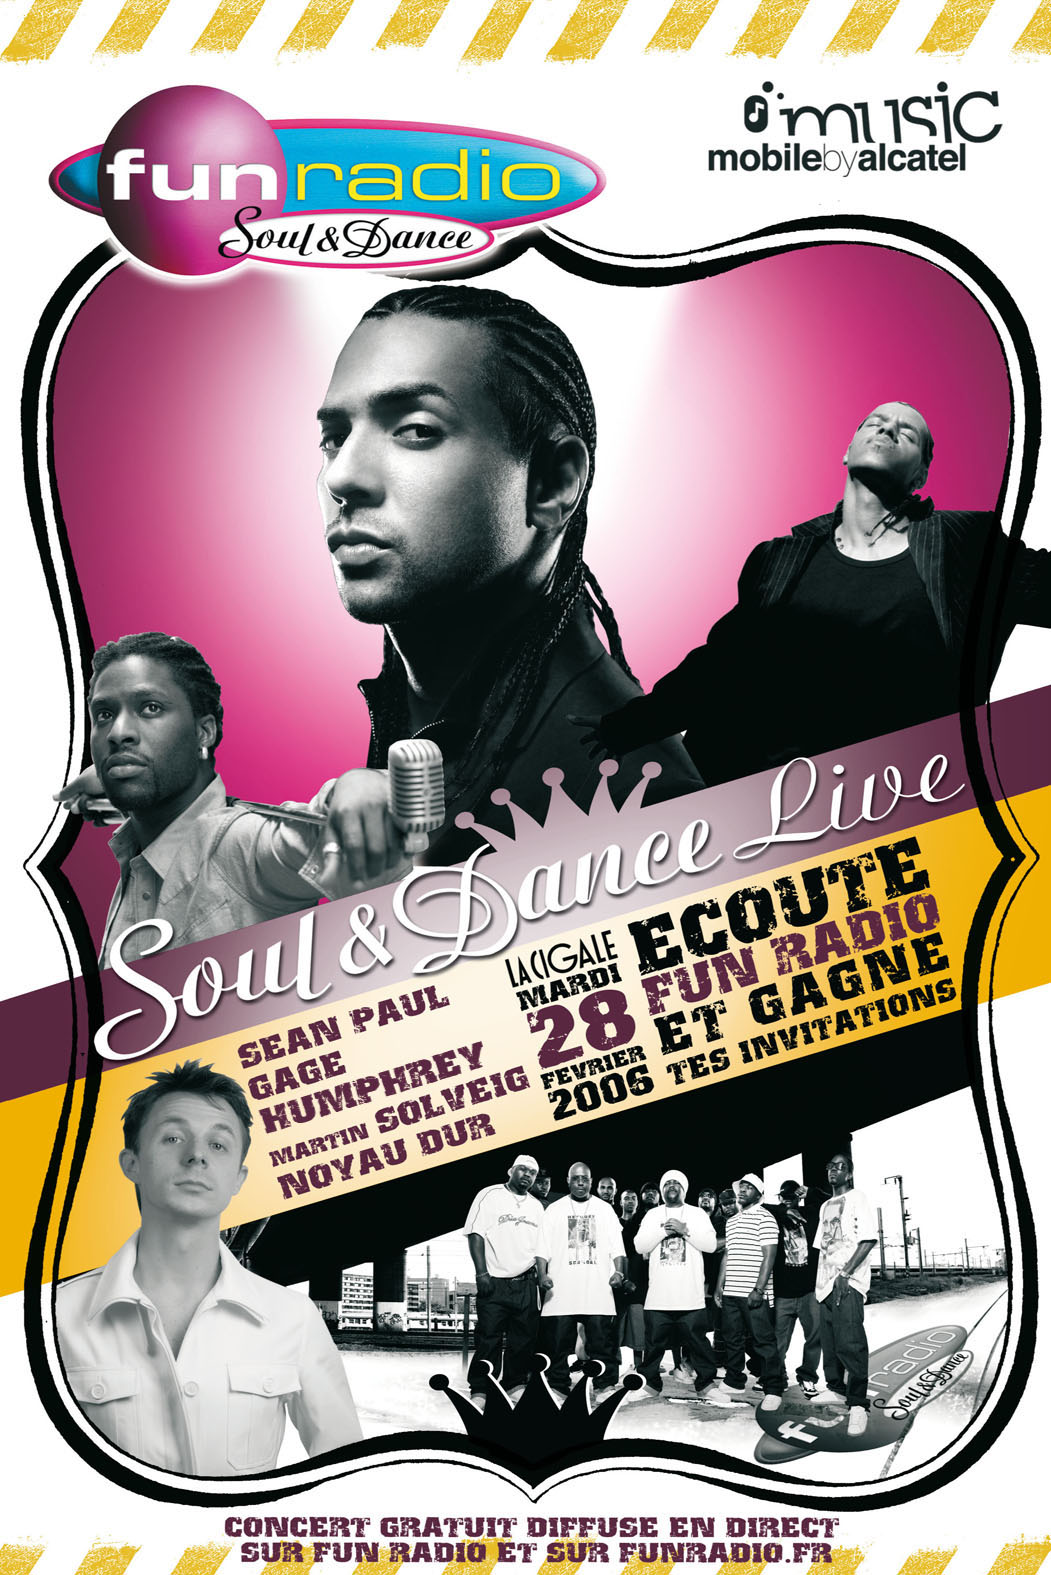 SOUL & DANCE LIVE avec Music Mobile by ALCATEL